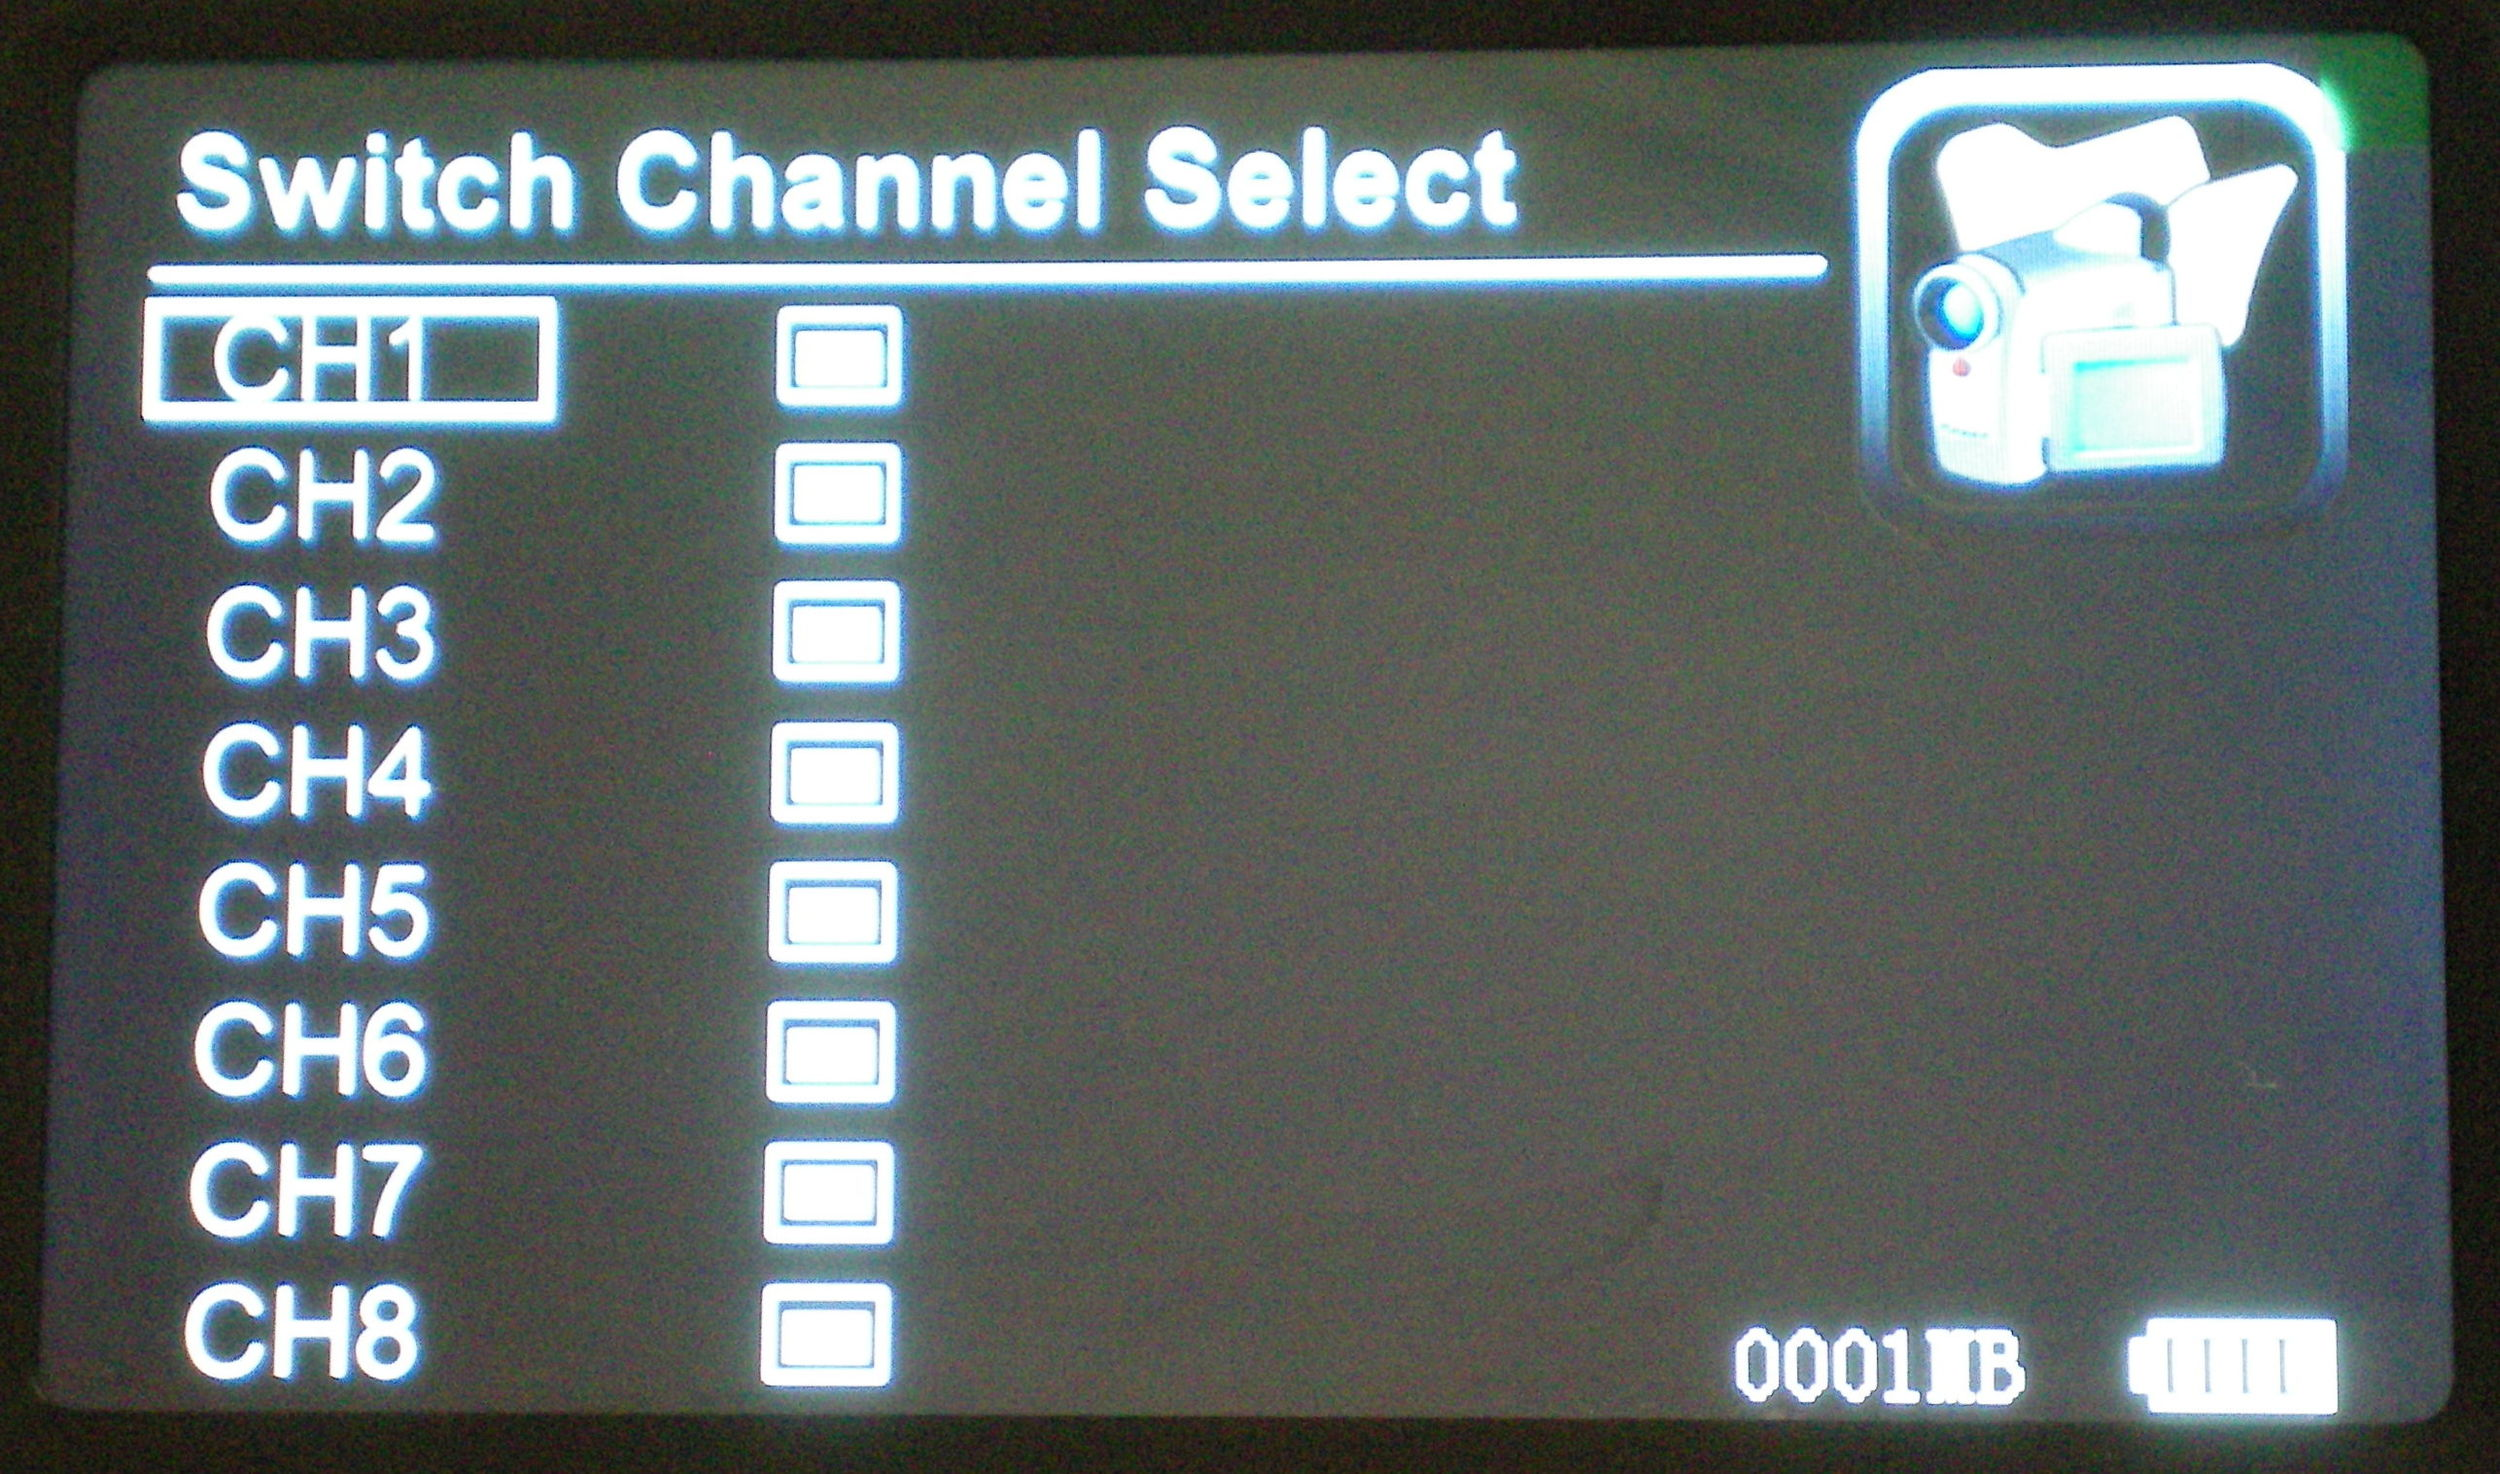 Up to eight cameras may be viewed on one receiver